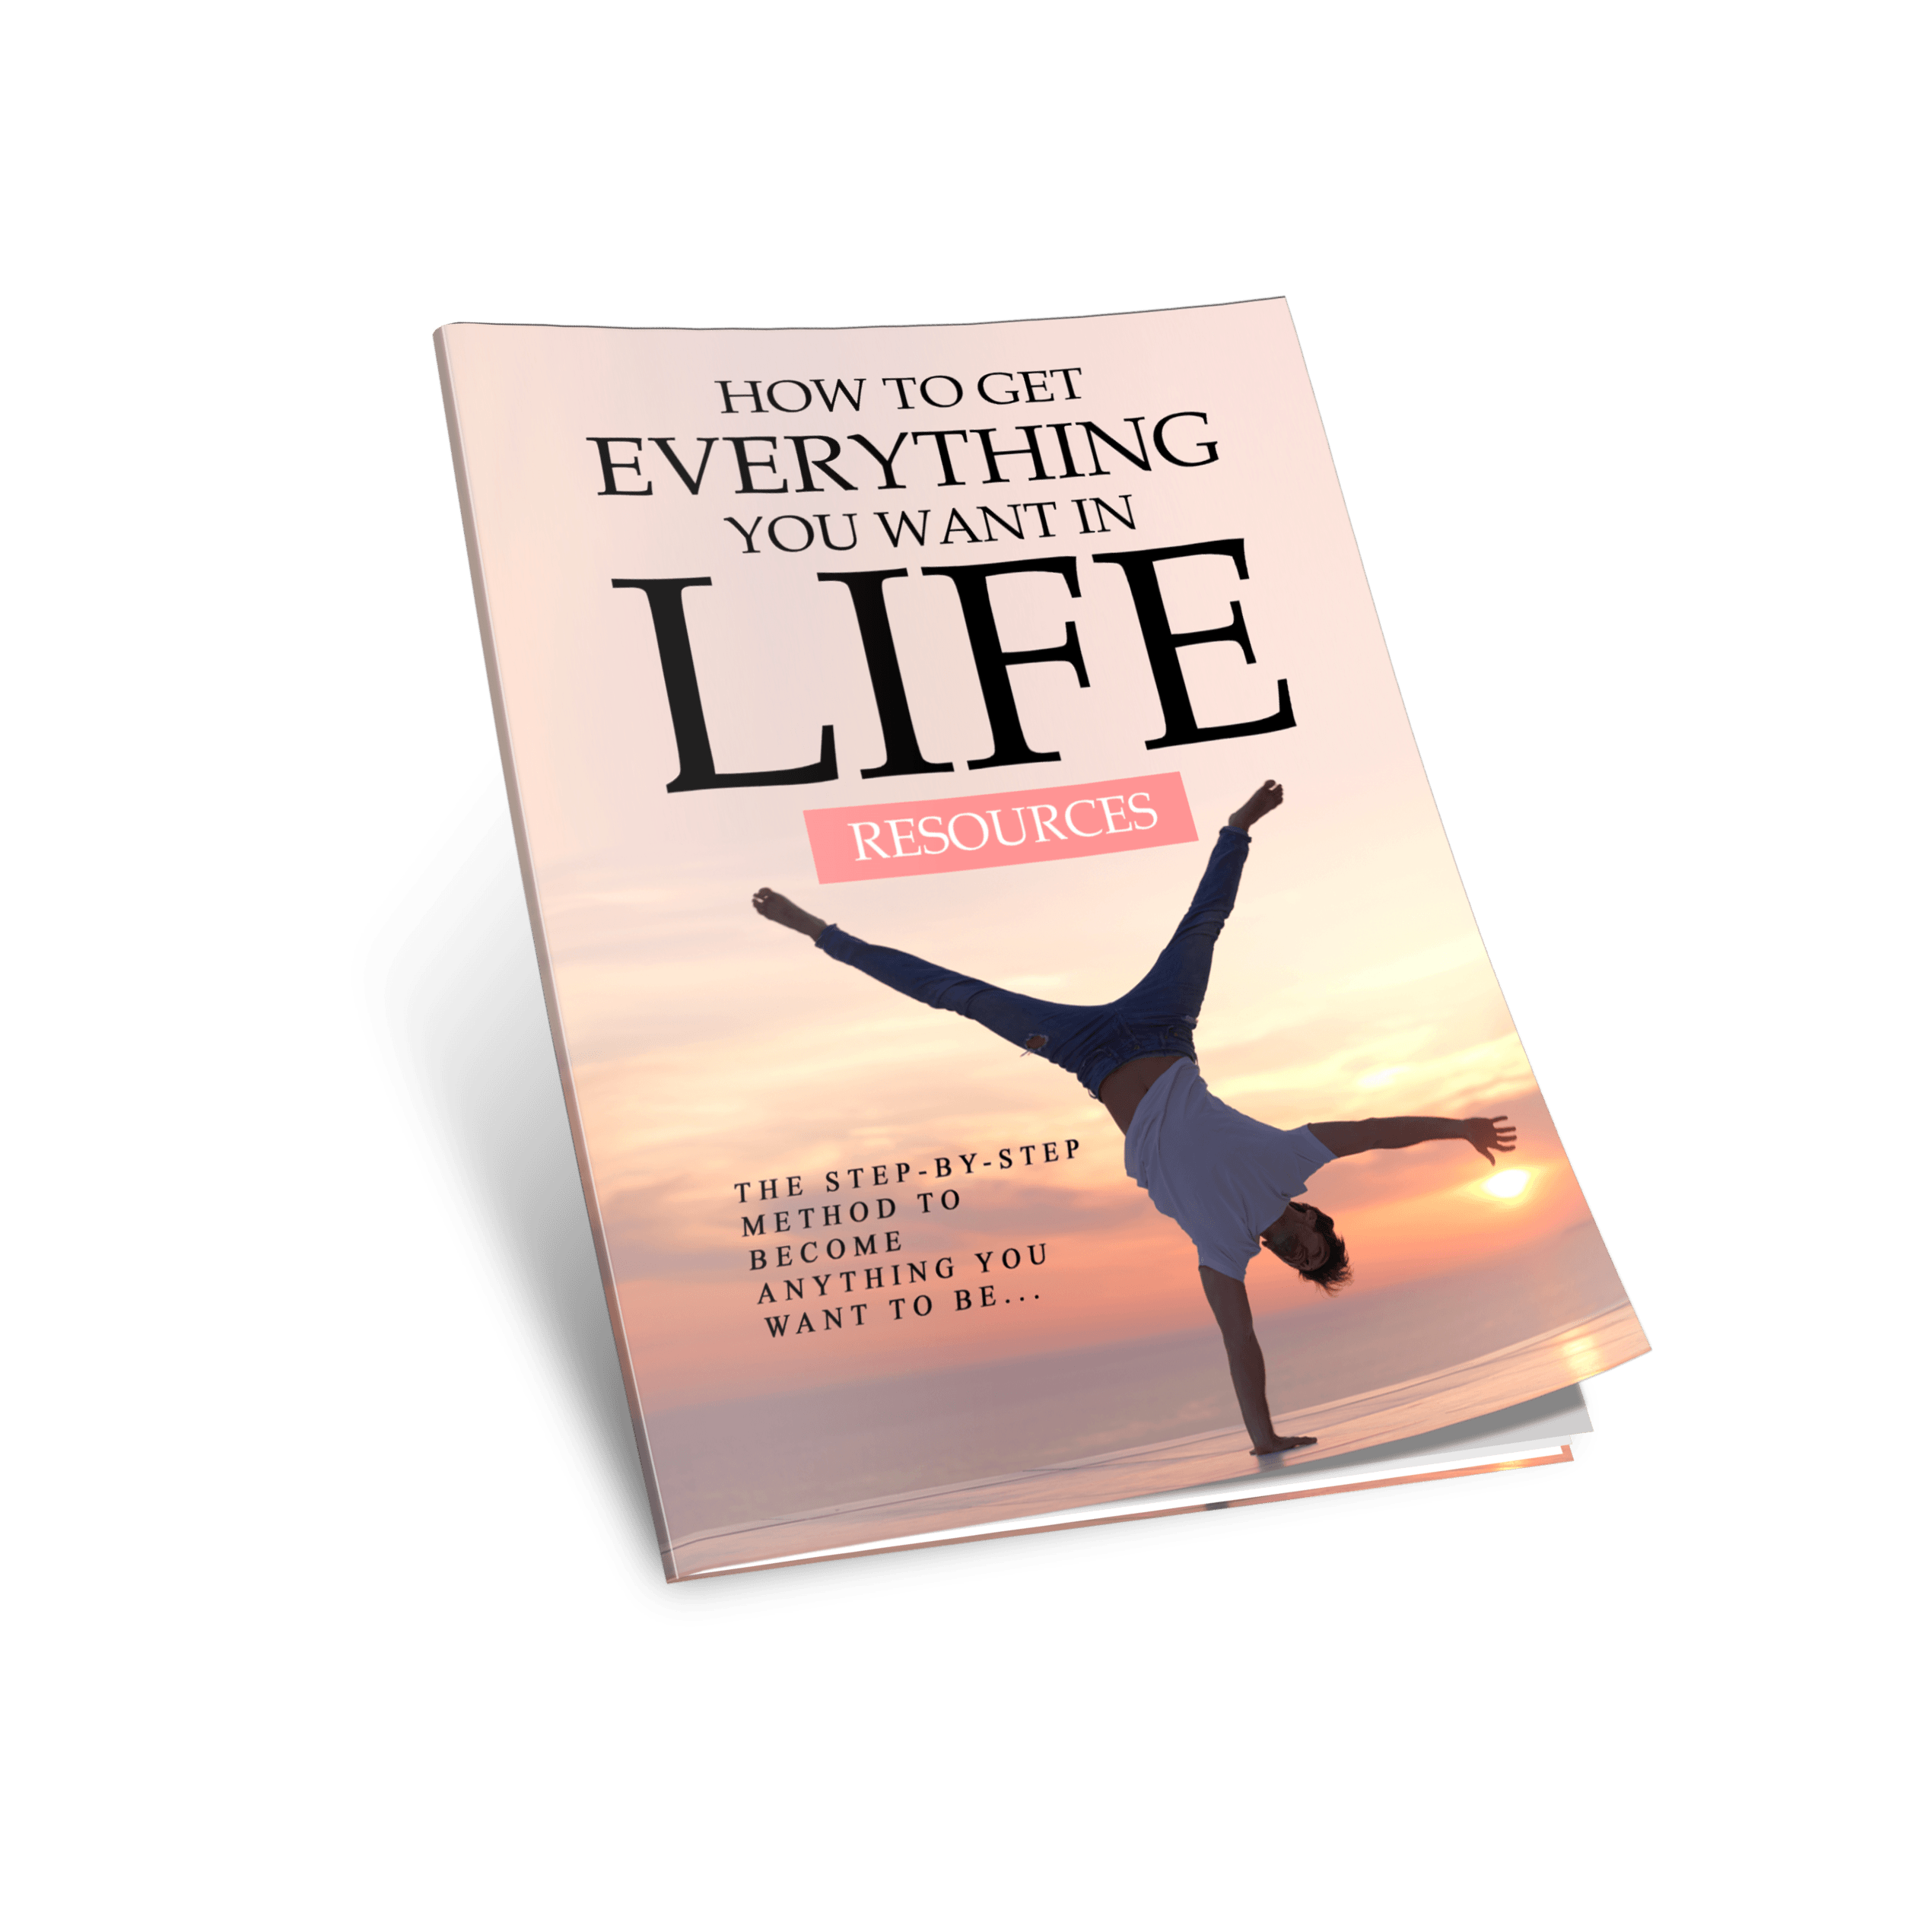 RESOURCES - Dave's Training On How To Get Everything You Want In Life